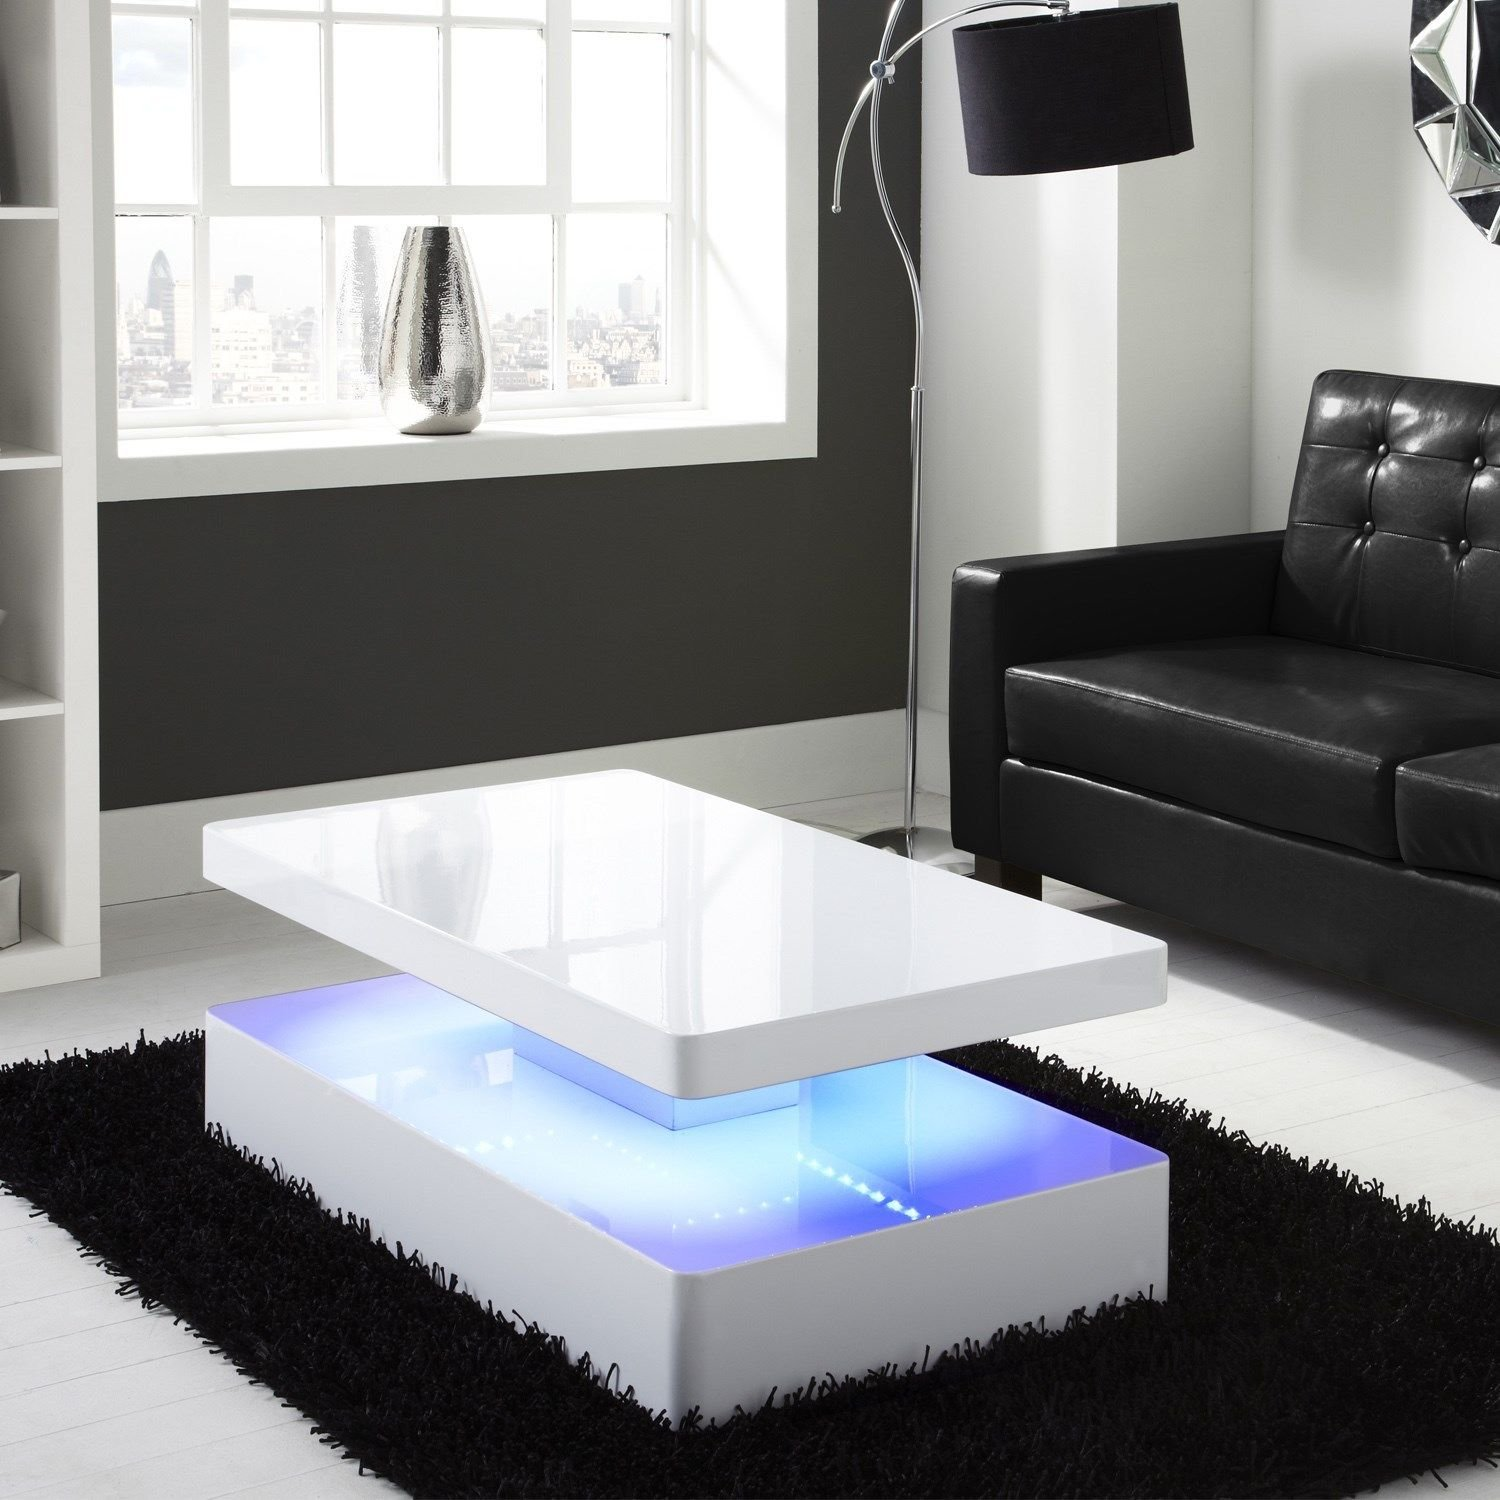 Tiffany White High Gloss Rectangular Coffee Table with LED